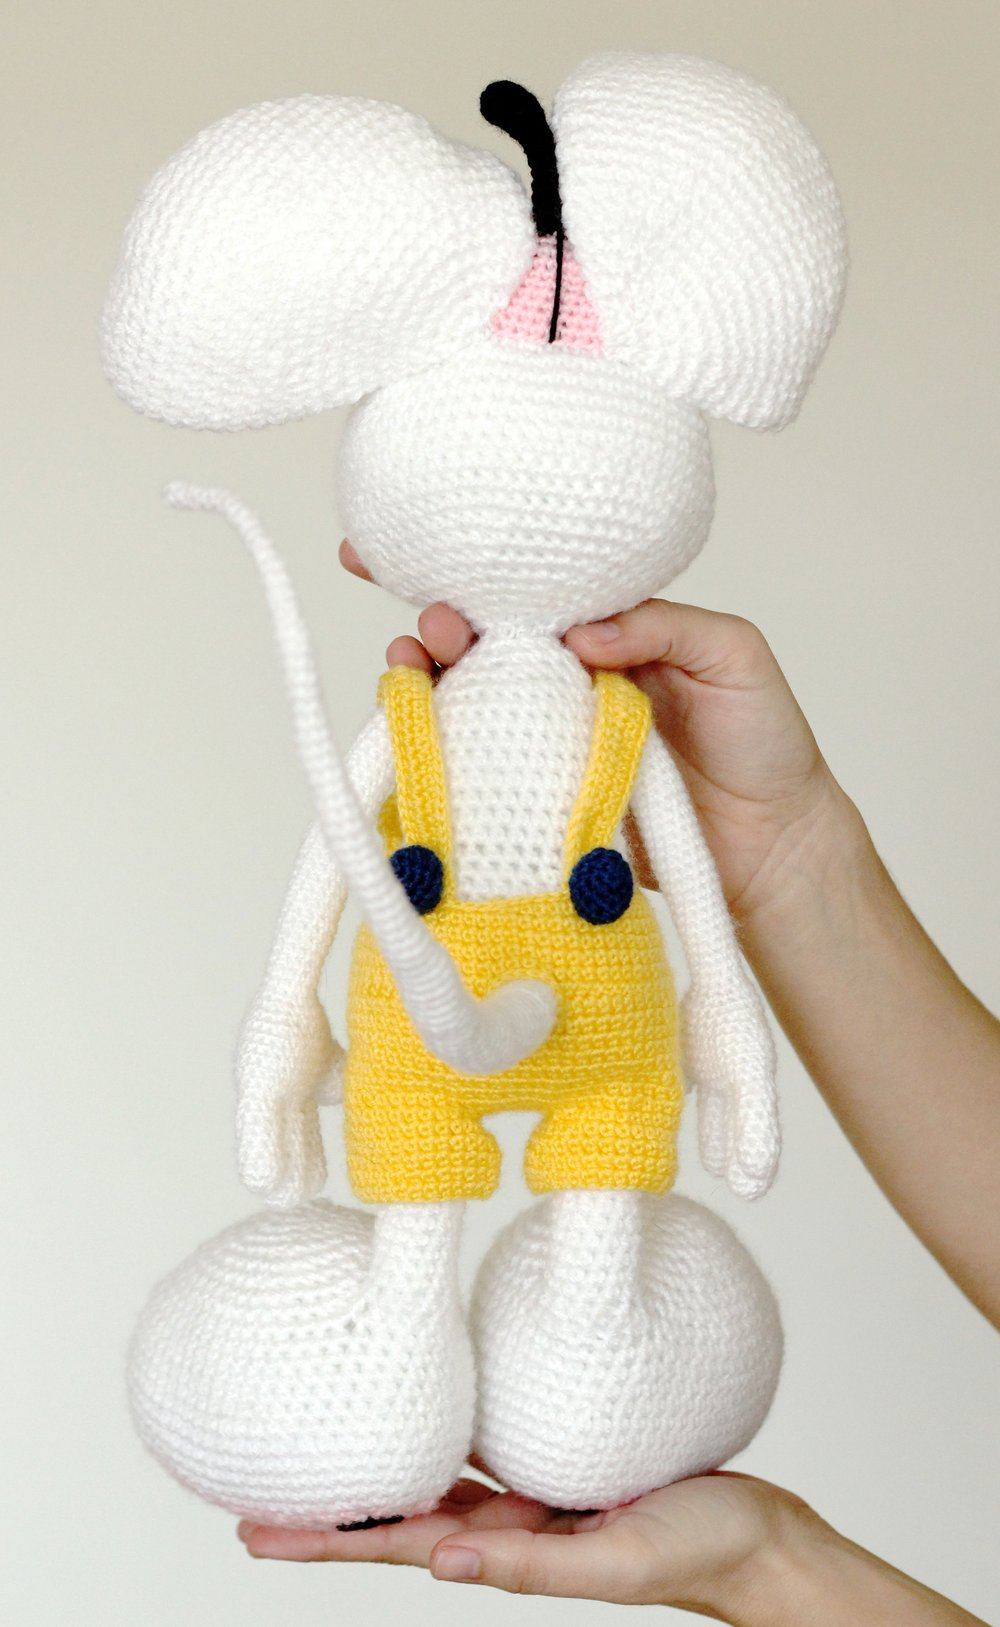 Crochet mouse pattern